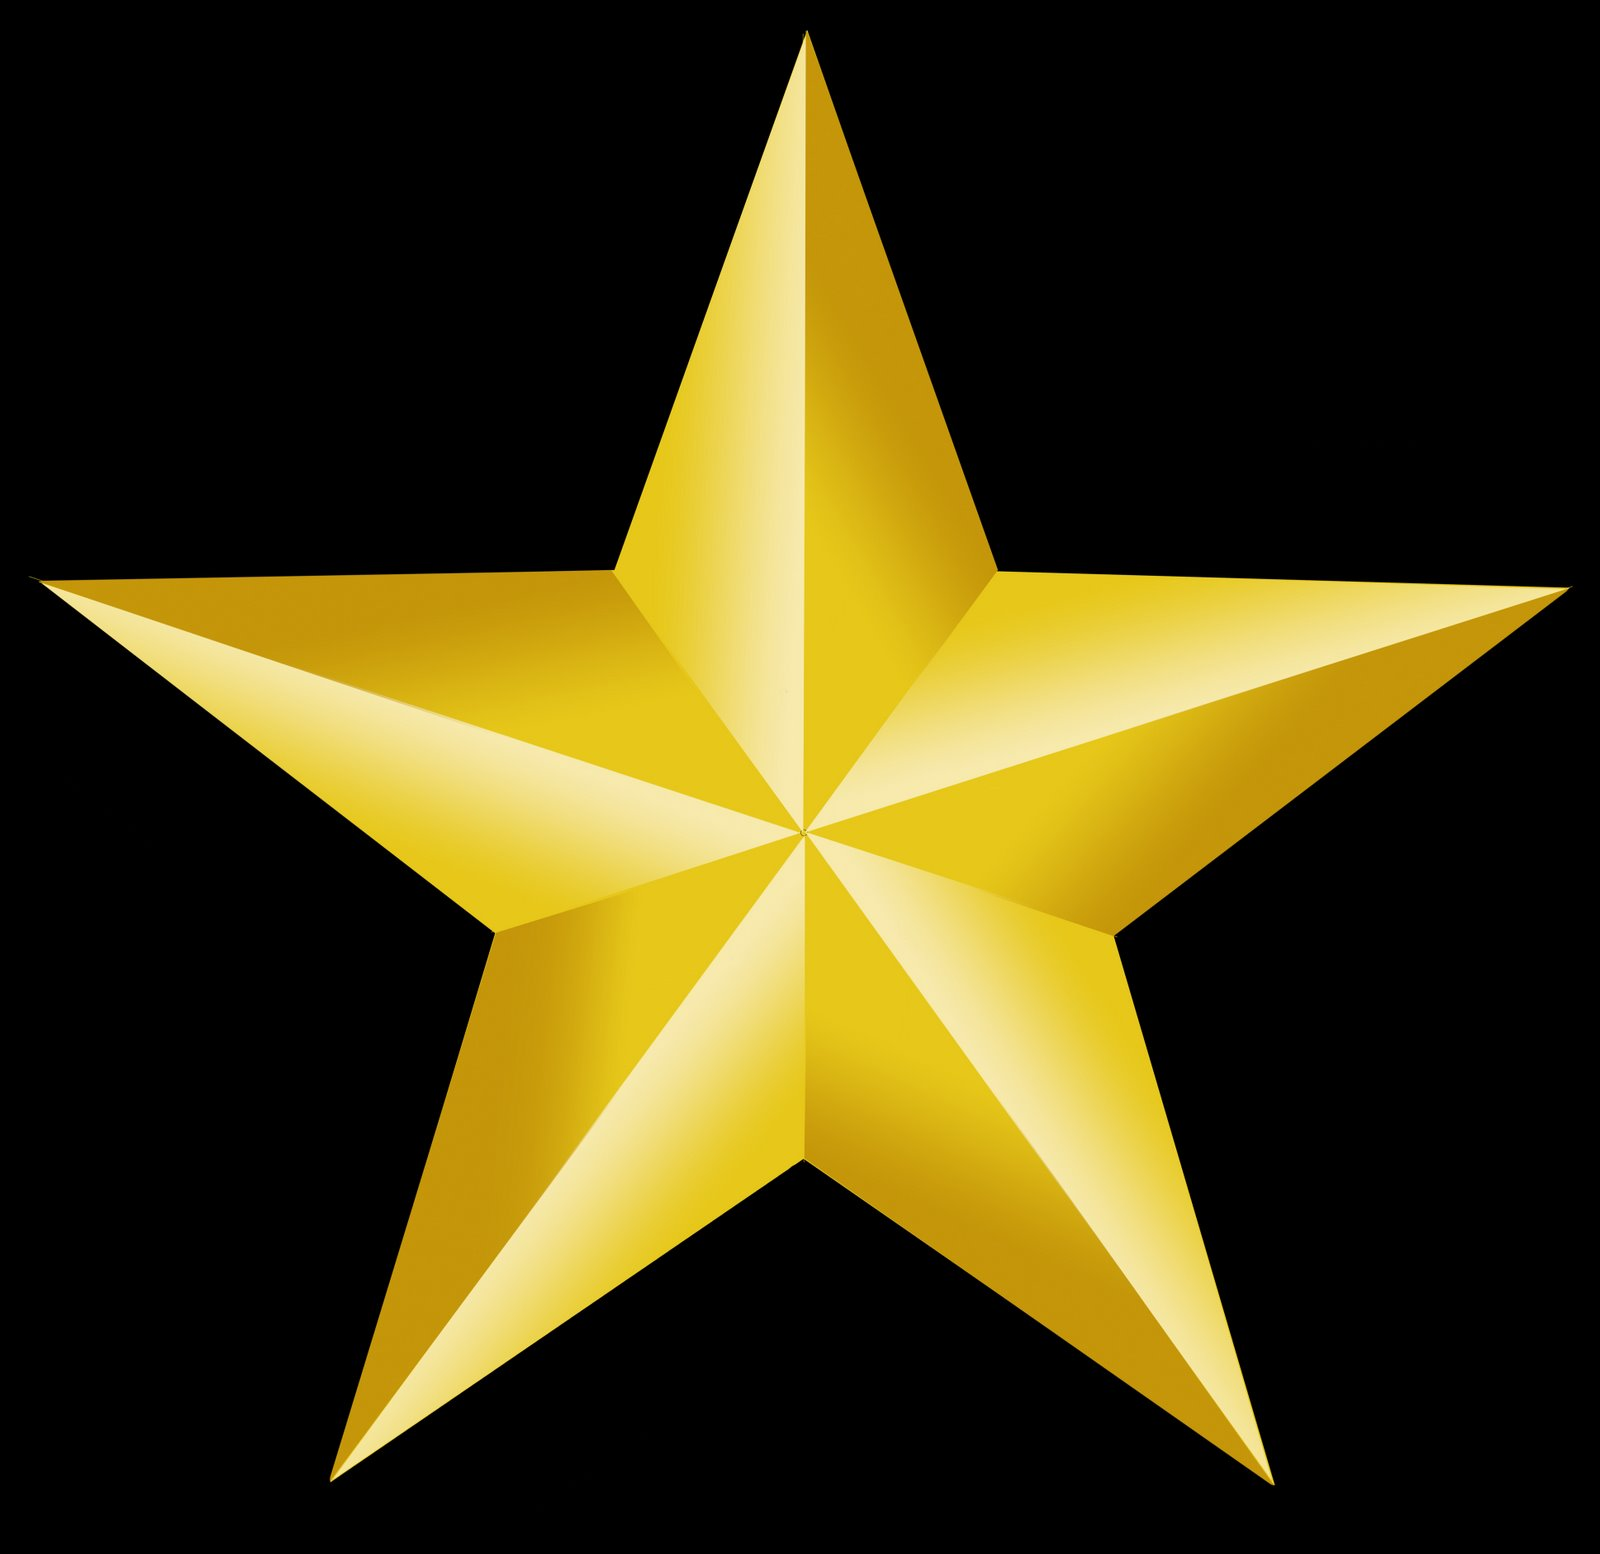 Gold Star Graphic